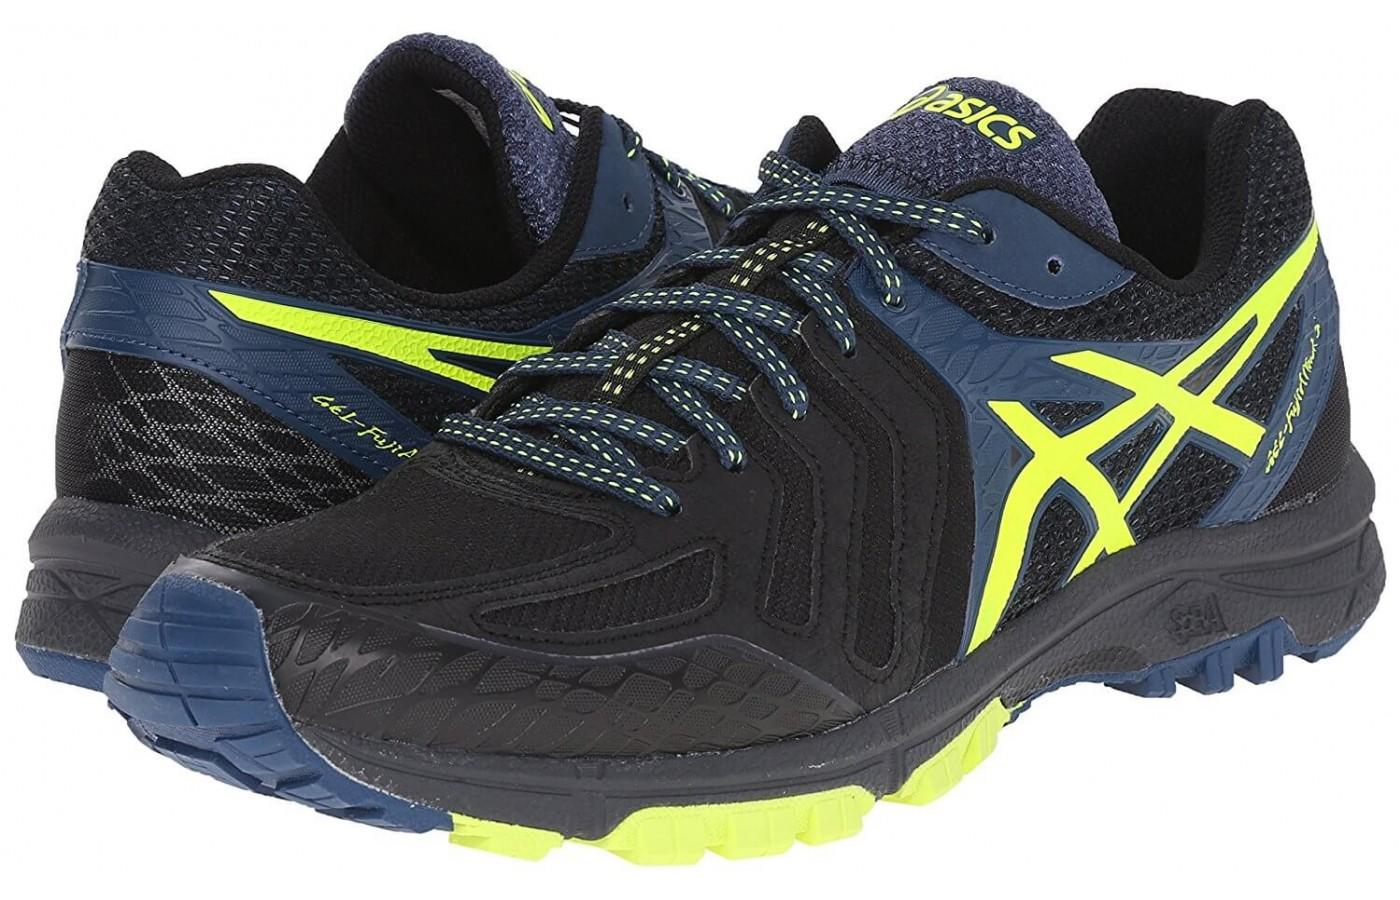 The Fujiattack 5 is overall, a high quality trail running shoe.